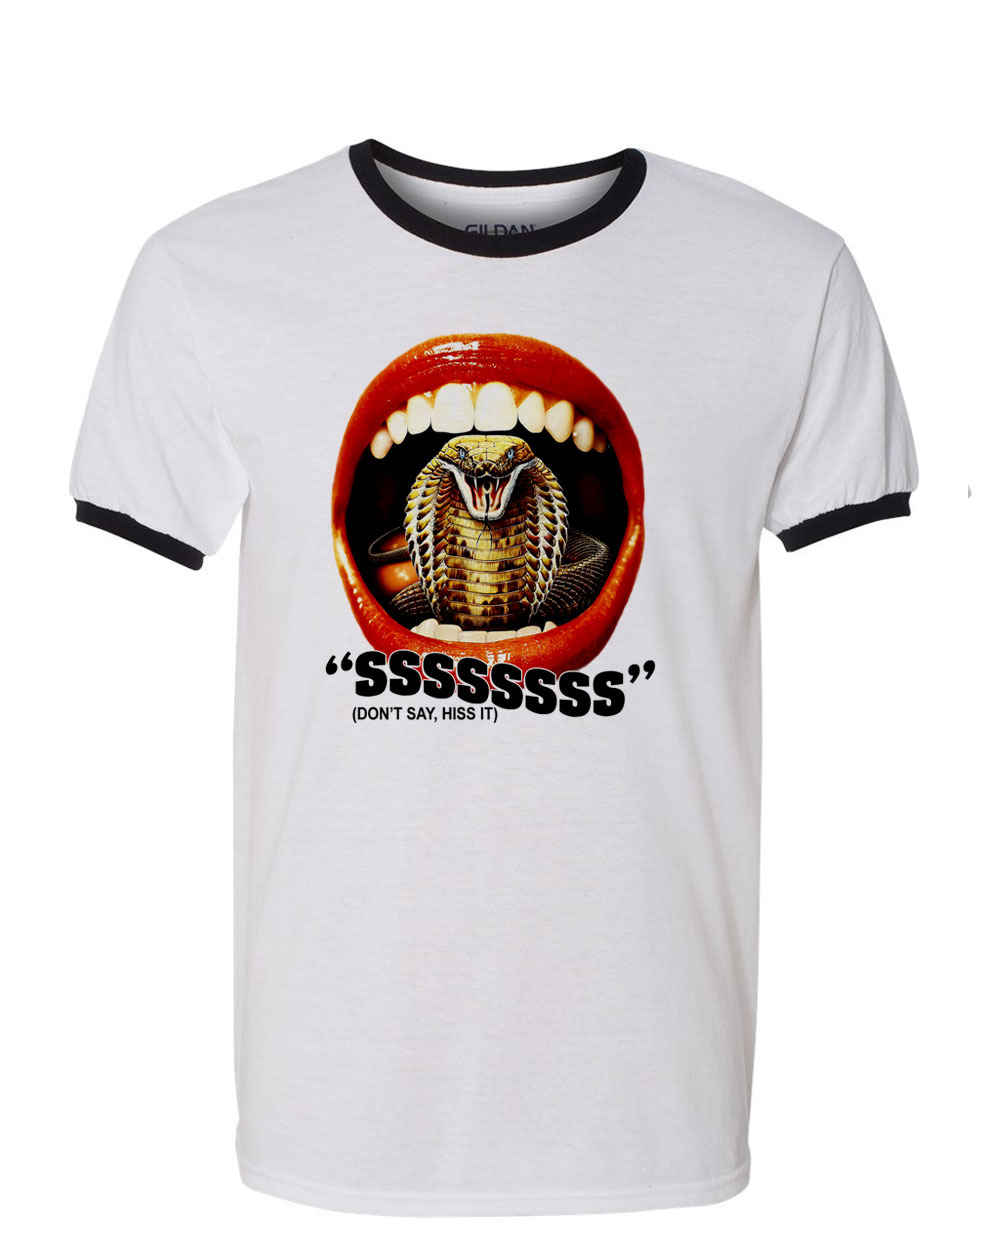 t shirt retro vintage horror movie cult film snake movie tee for sale online graphic tees store